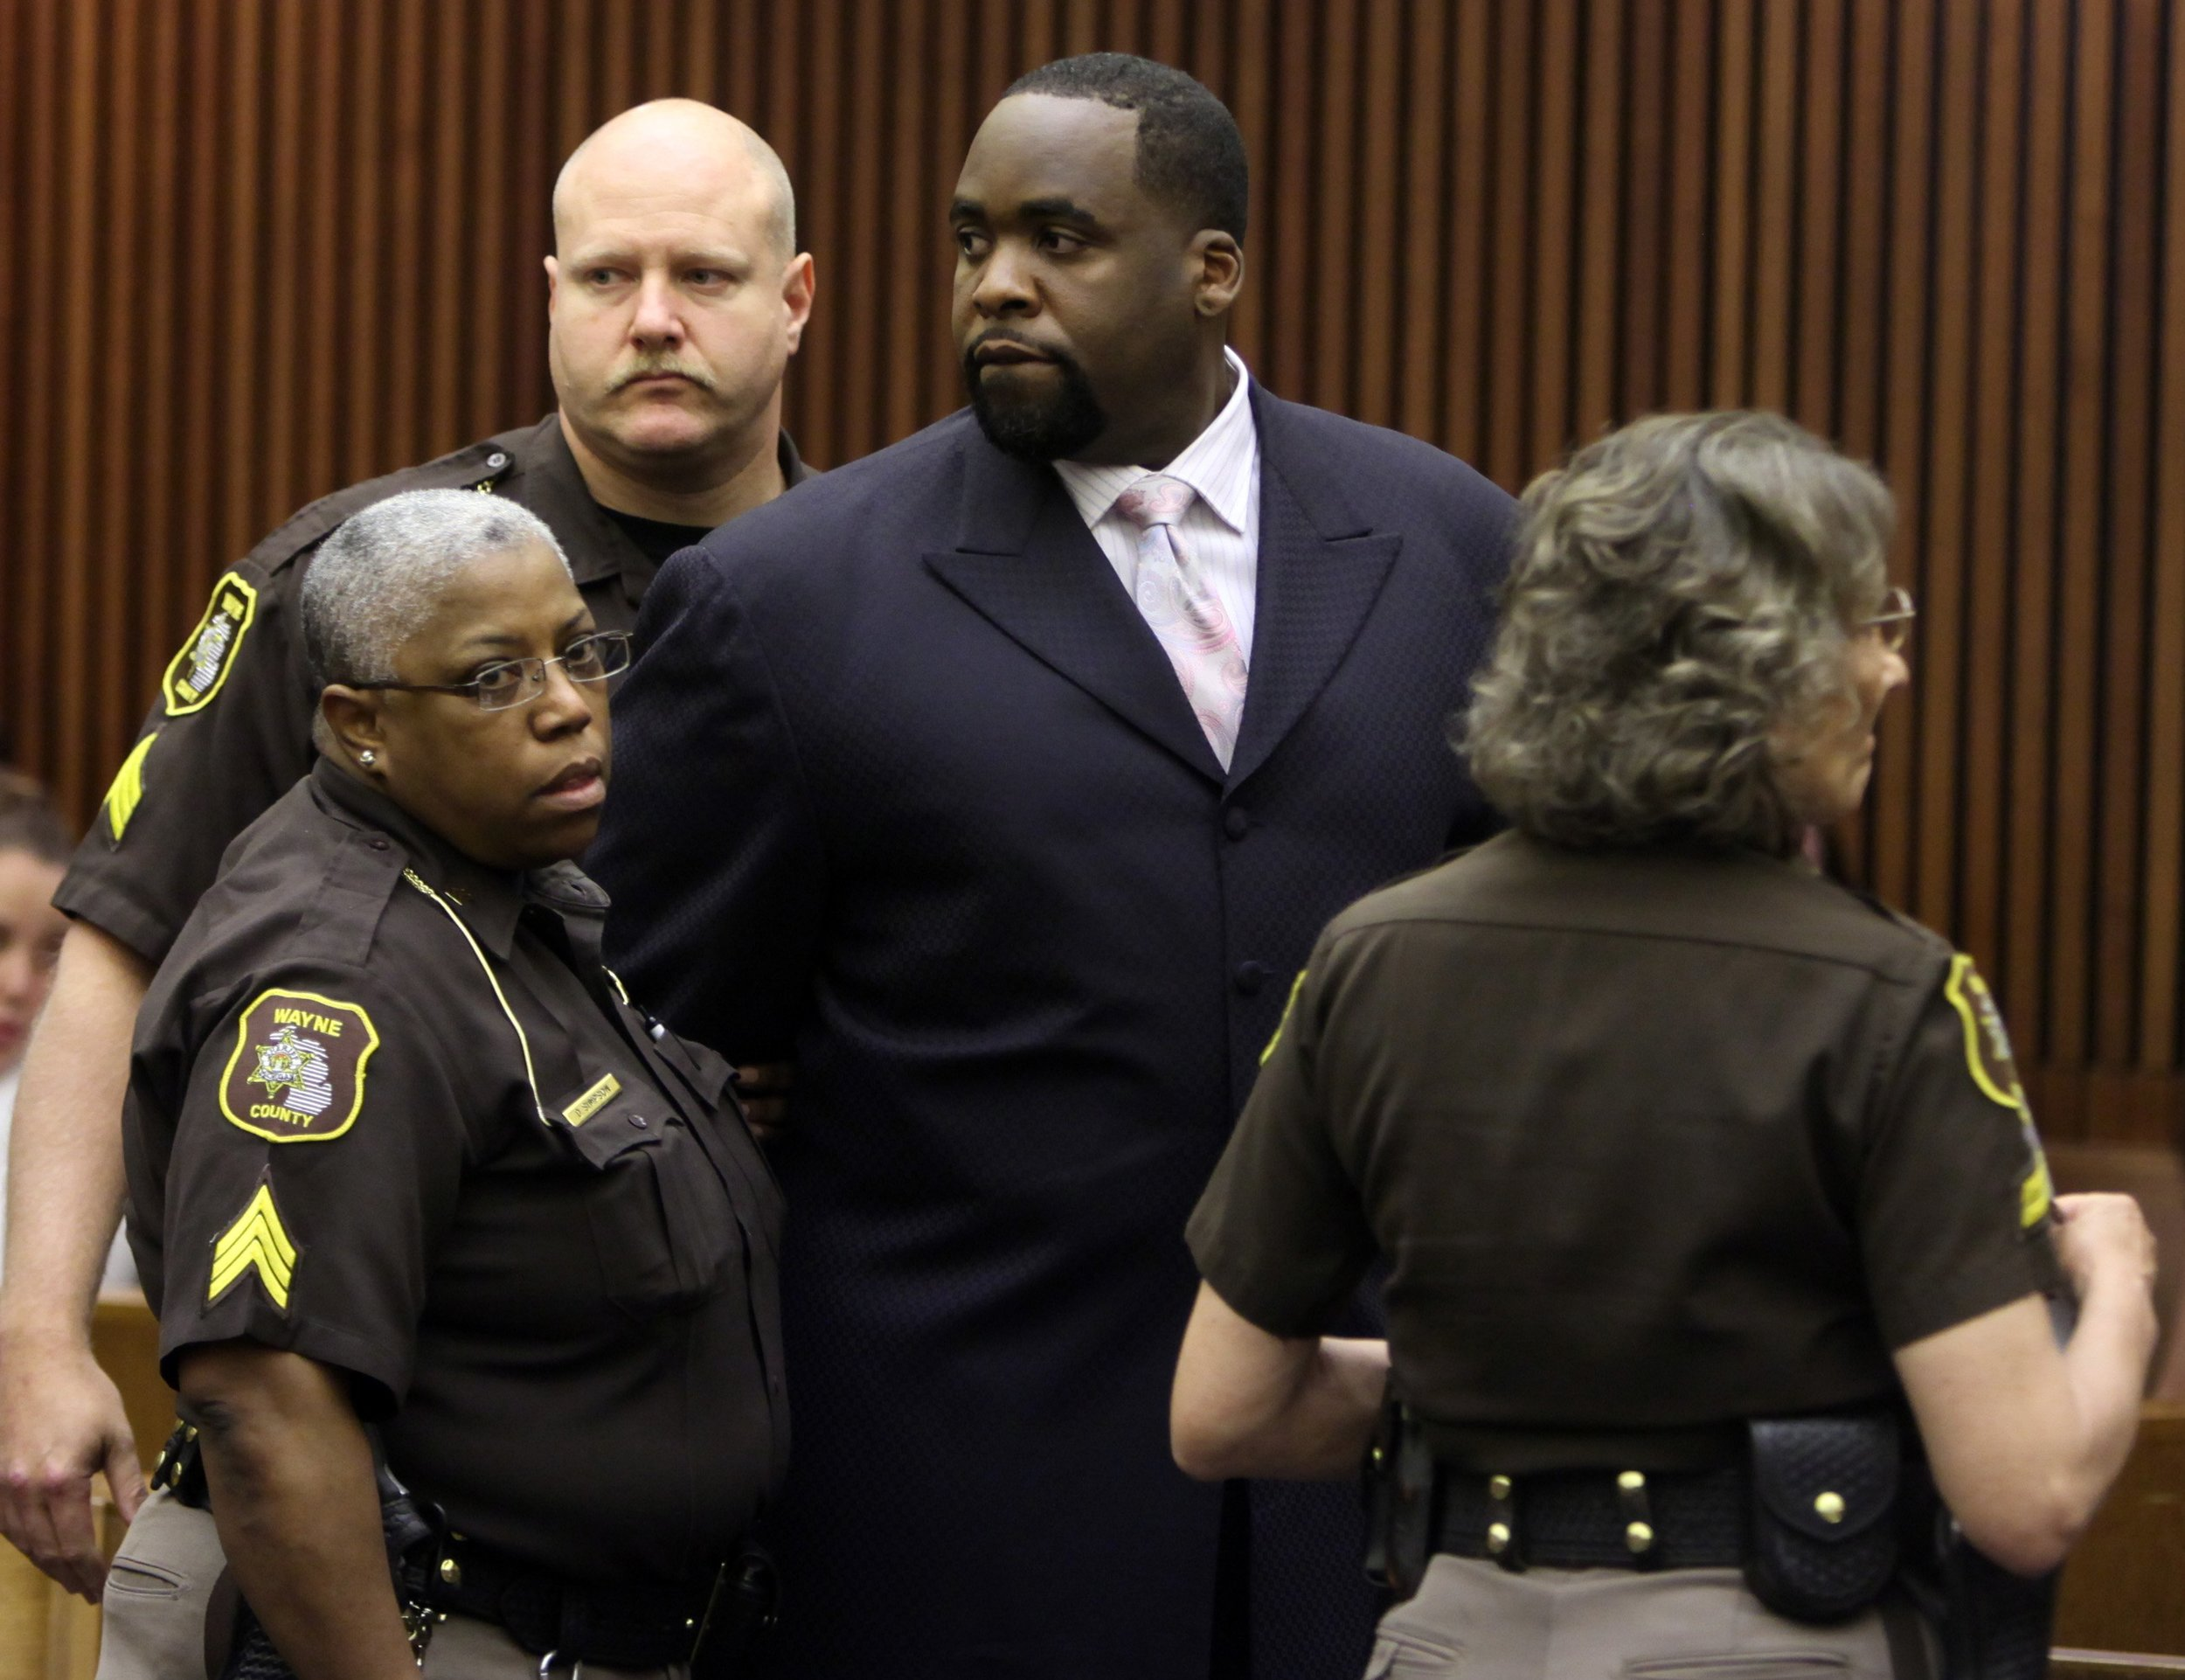 Kwame Kilpatrick served 99 days in jail for his 2008 perjury charges, but it wouldn't be his last time behind bars. Here, Kwame Kilpatrick is handcuffed after his sentencing by Judge David Groner in May 2010.  Courtesy of the Detroit Free Press.